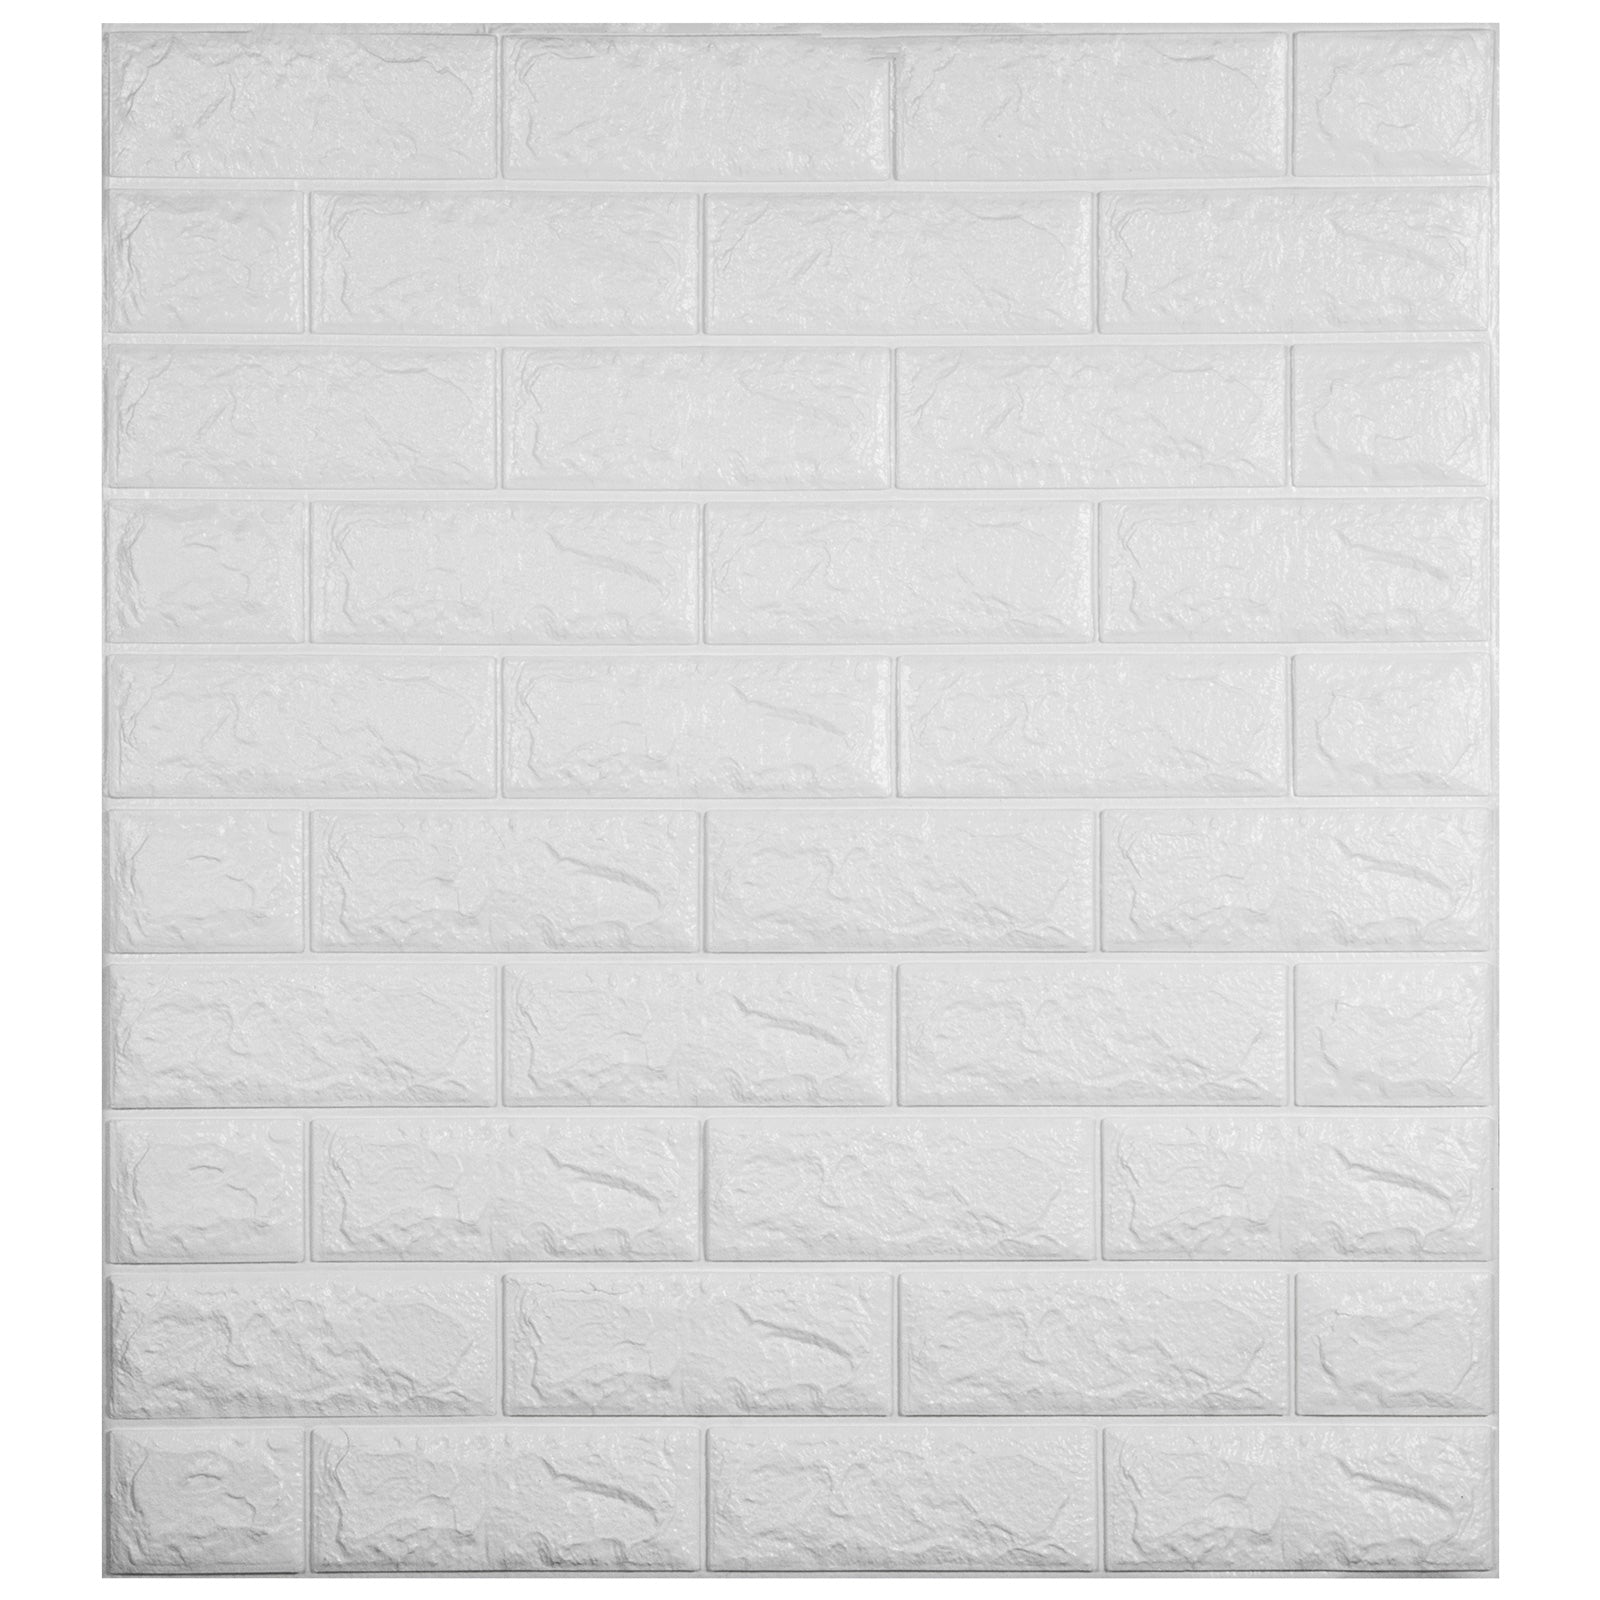 Waterproof 3d Wall Sticker Brick Diy Pe Foam Panel Home Room Kitchen Decor 22pcs